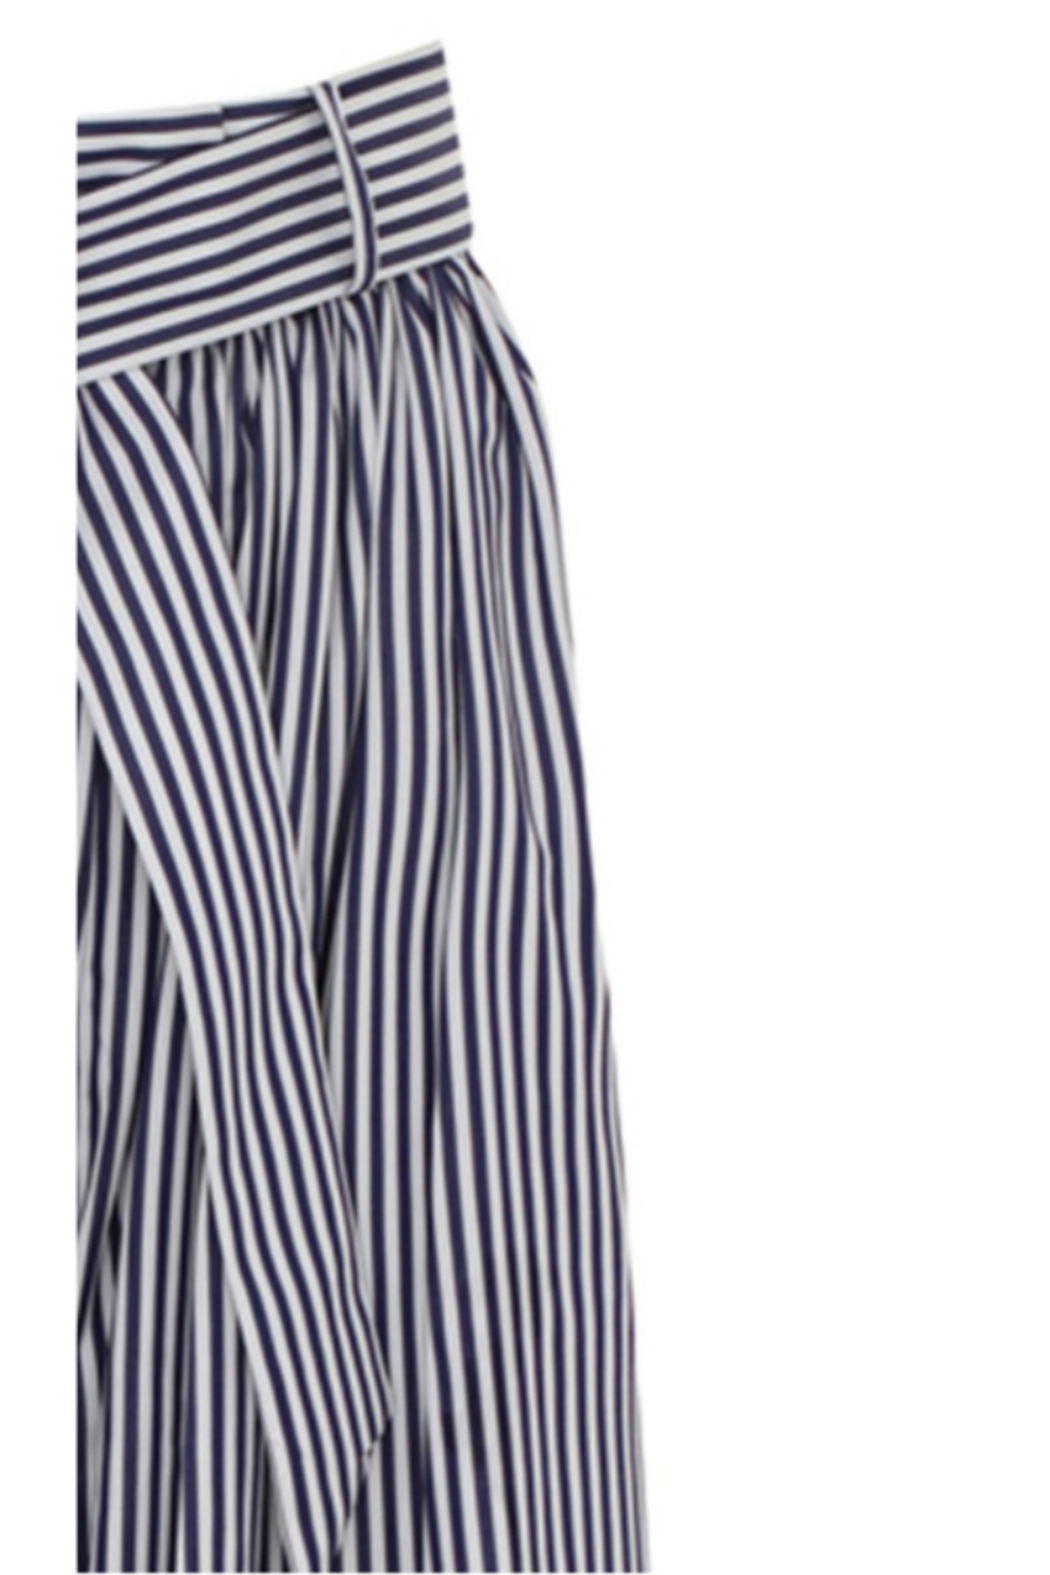 Martin Grant GATHERED WAIST STRIPED WIDE LEG PANT - Side Cropped Image